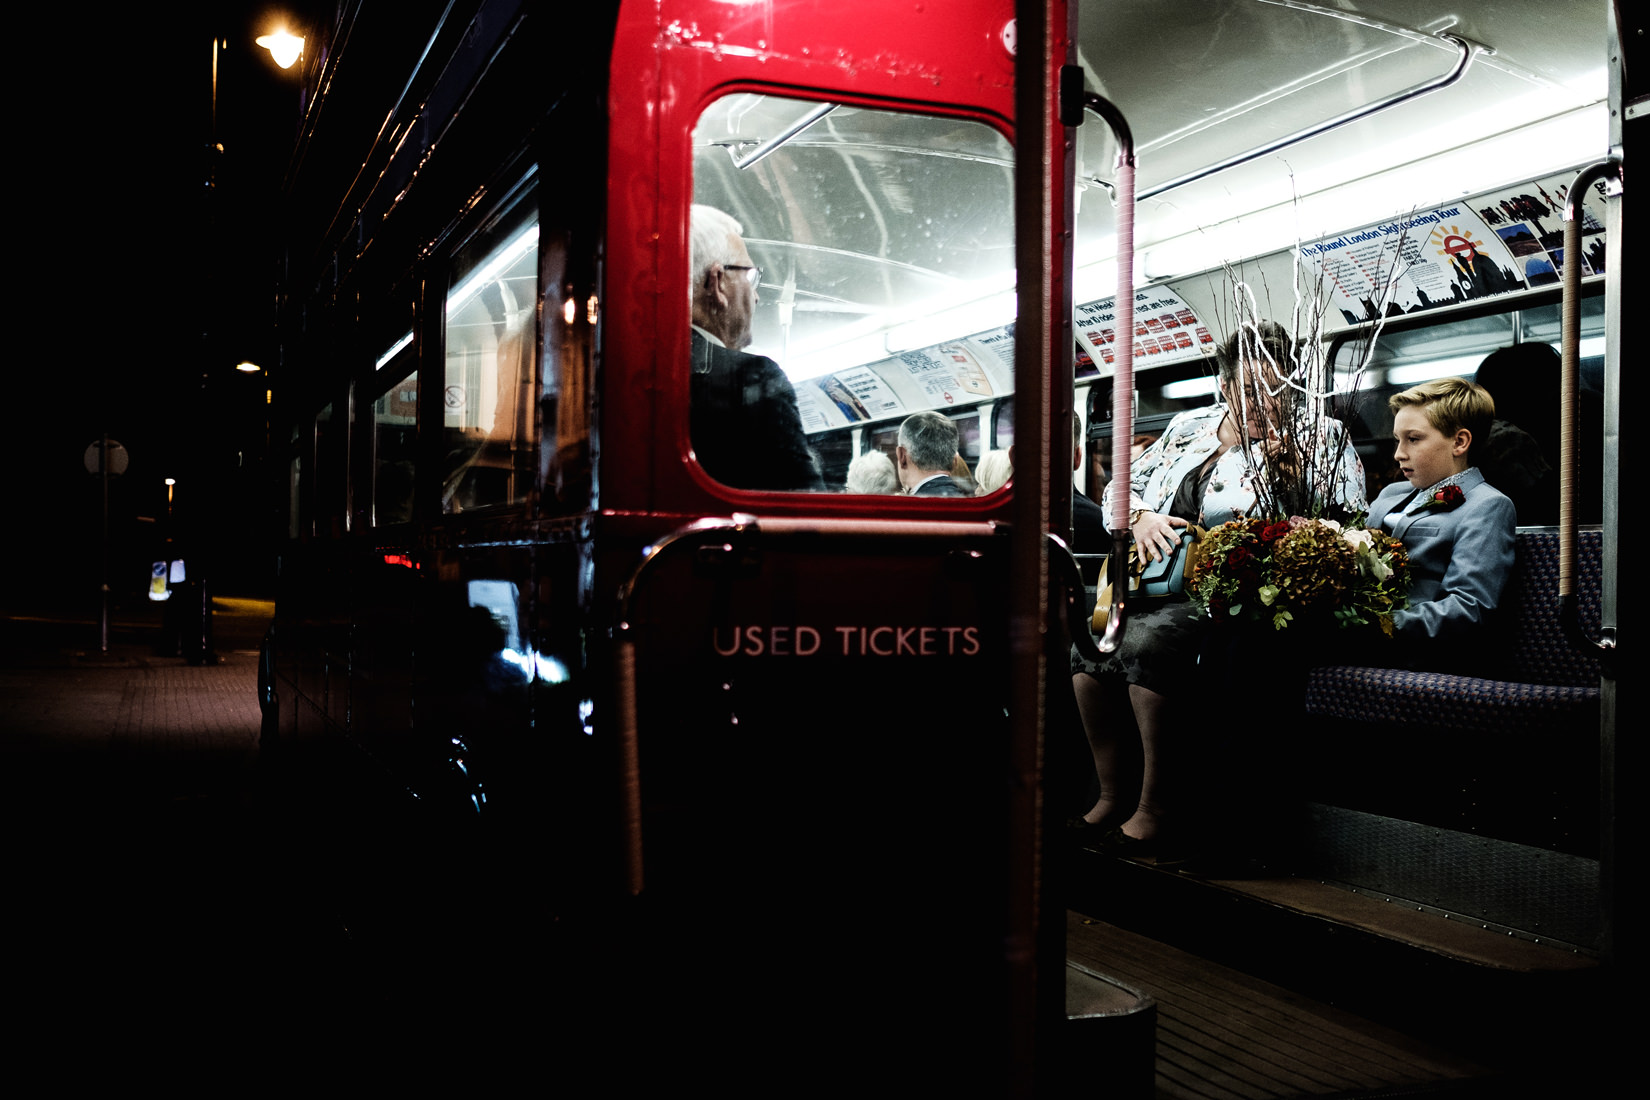 boy on london bus with wedding centrepiece